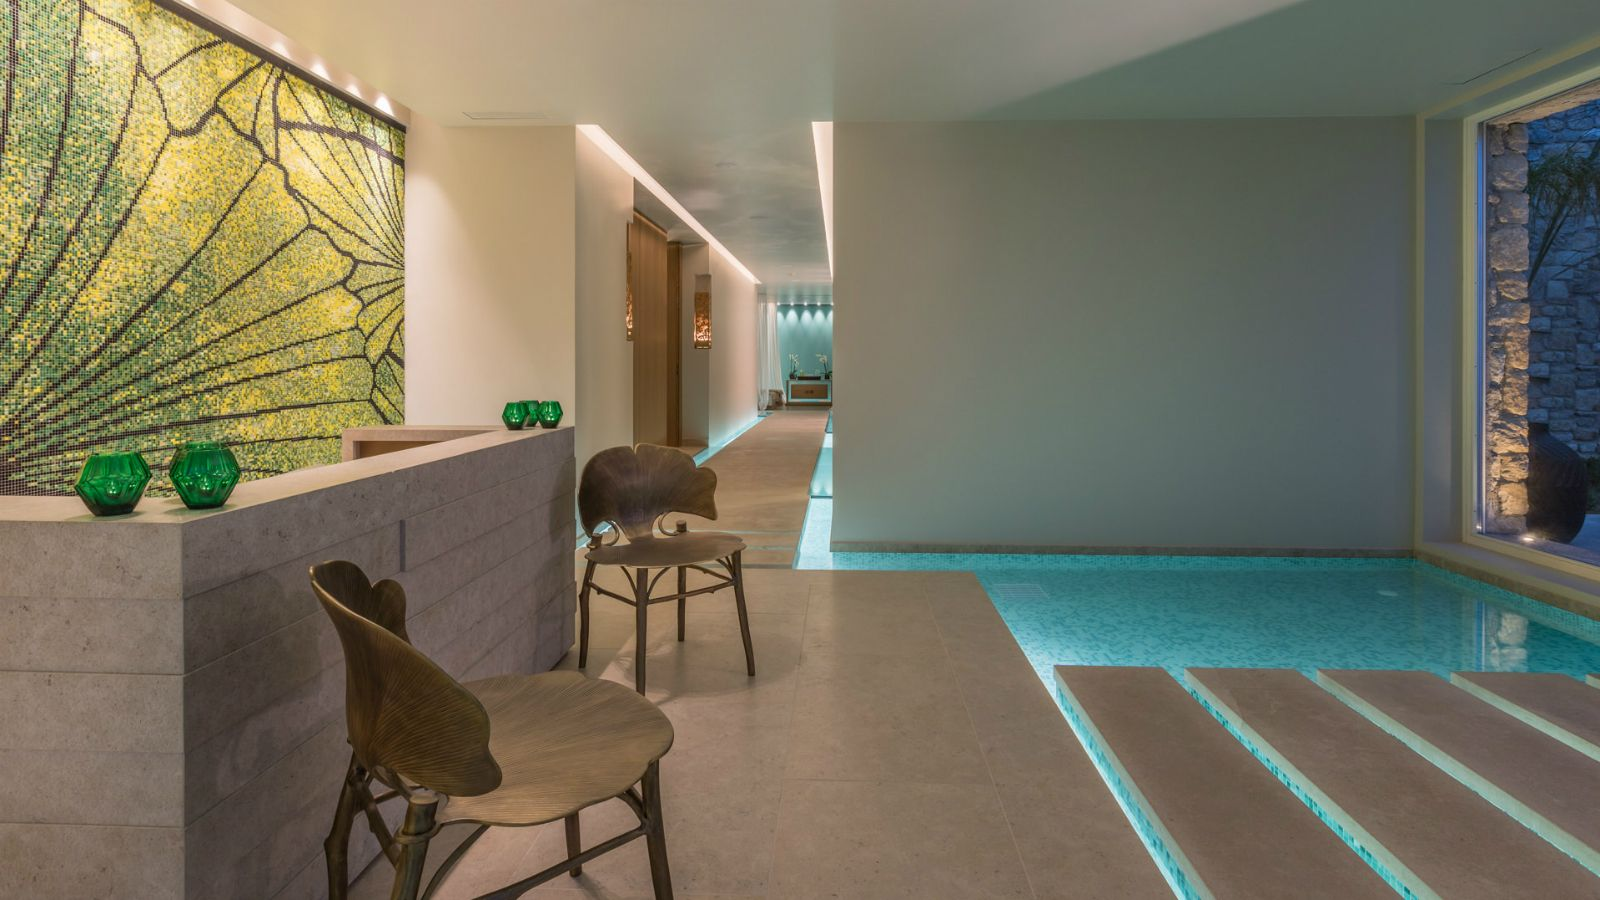 Reception area at the new Ginkgo Spa at Santa Marina Resort Mykonos The Luxury Collection